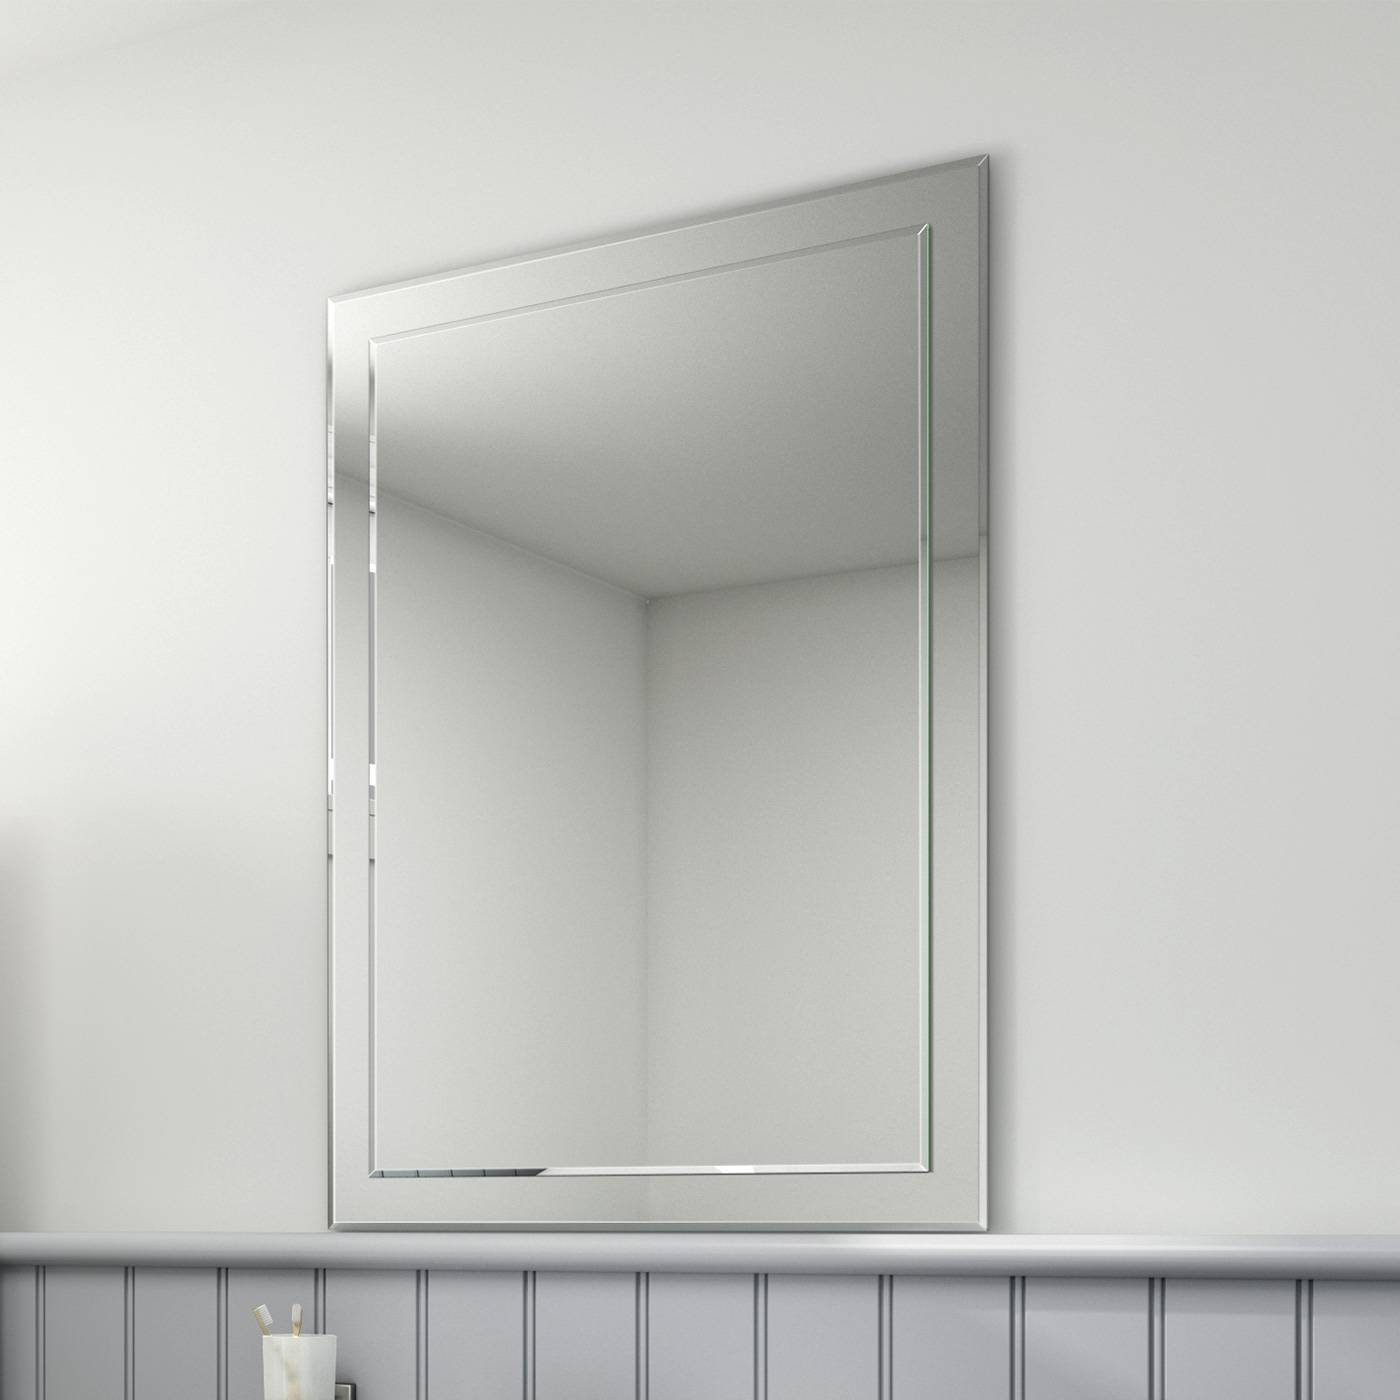 500X700Mm Rectangular Glass Bevelled Edge Bathroom Mirror Mc148 | Ebay intended for Bevel Edged Mirrors (Image 1 of 15)